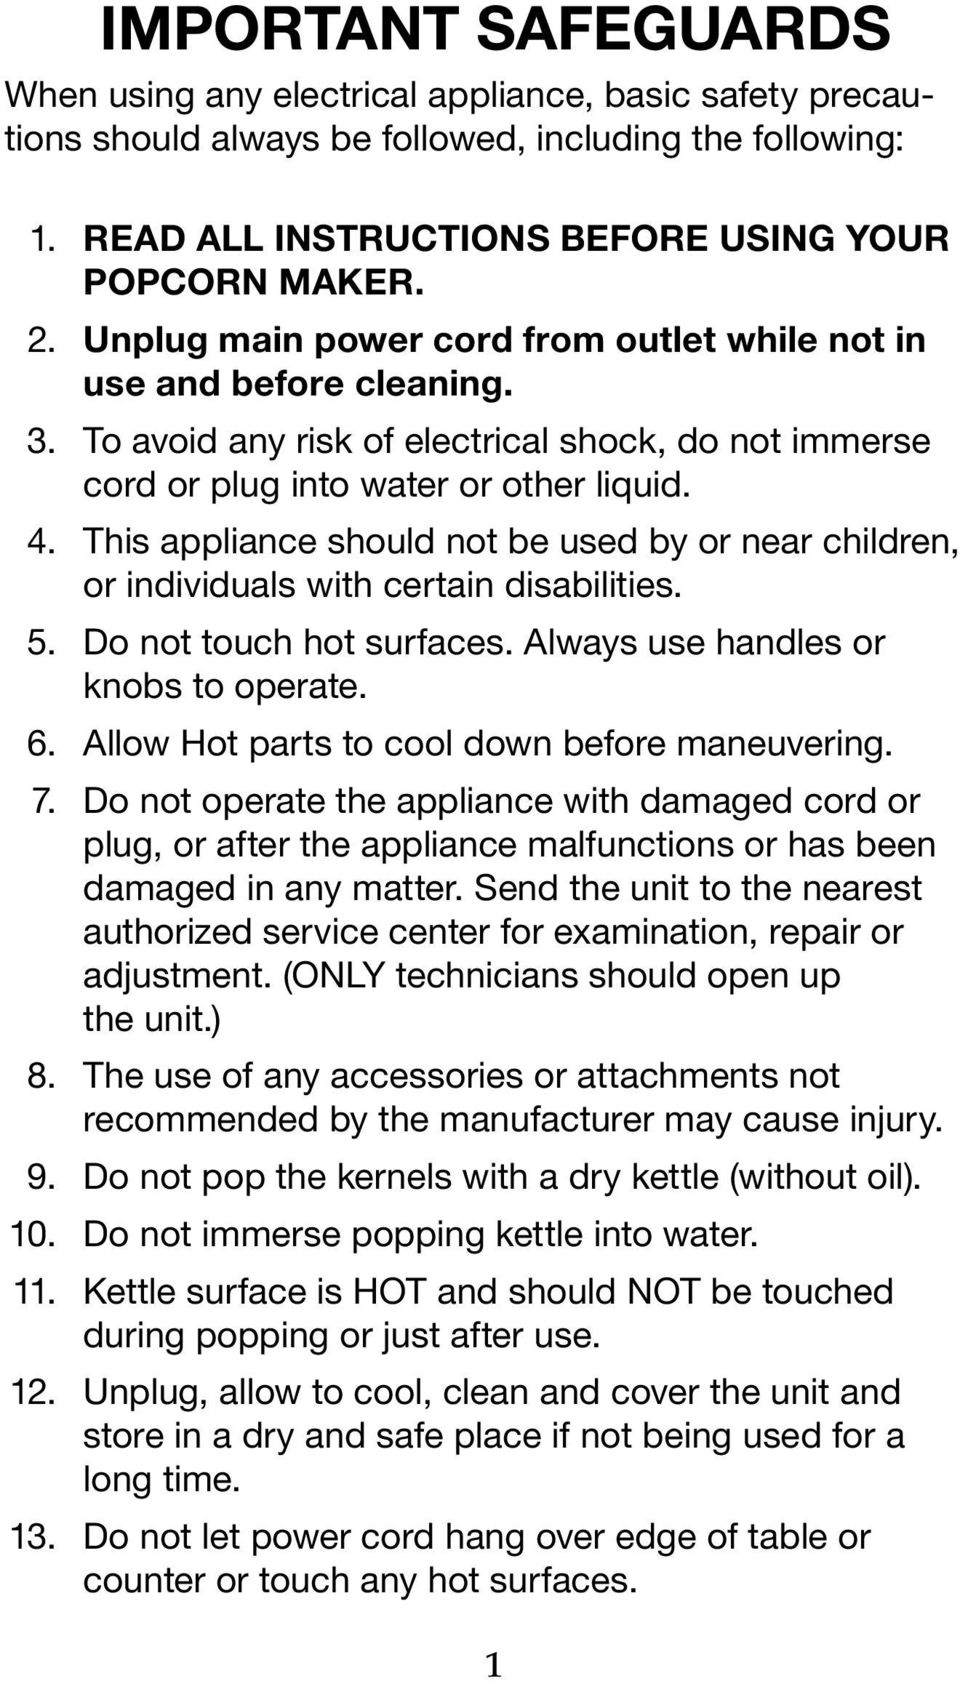 This appliance should not be used by or near children, or individuals with certain disabilities. 5. Do not touch hot surfaces. Always use handles or knobs to operate. 6.